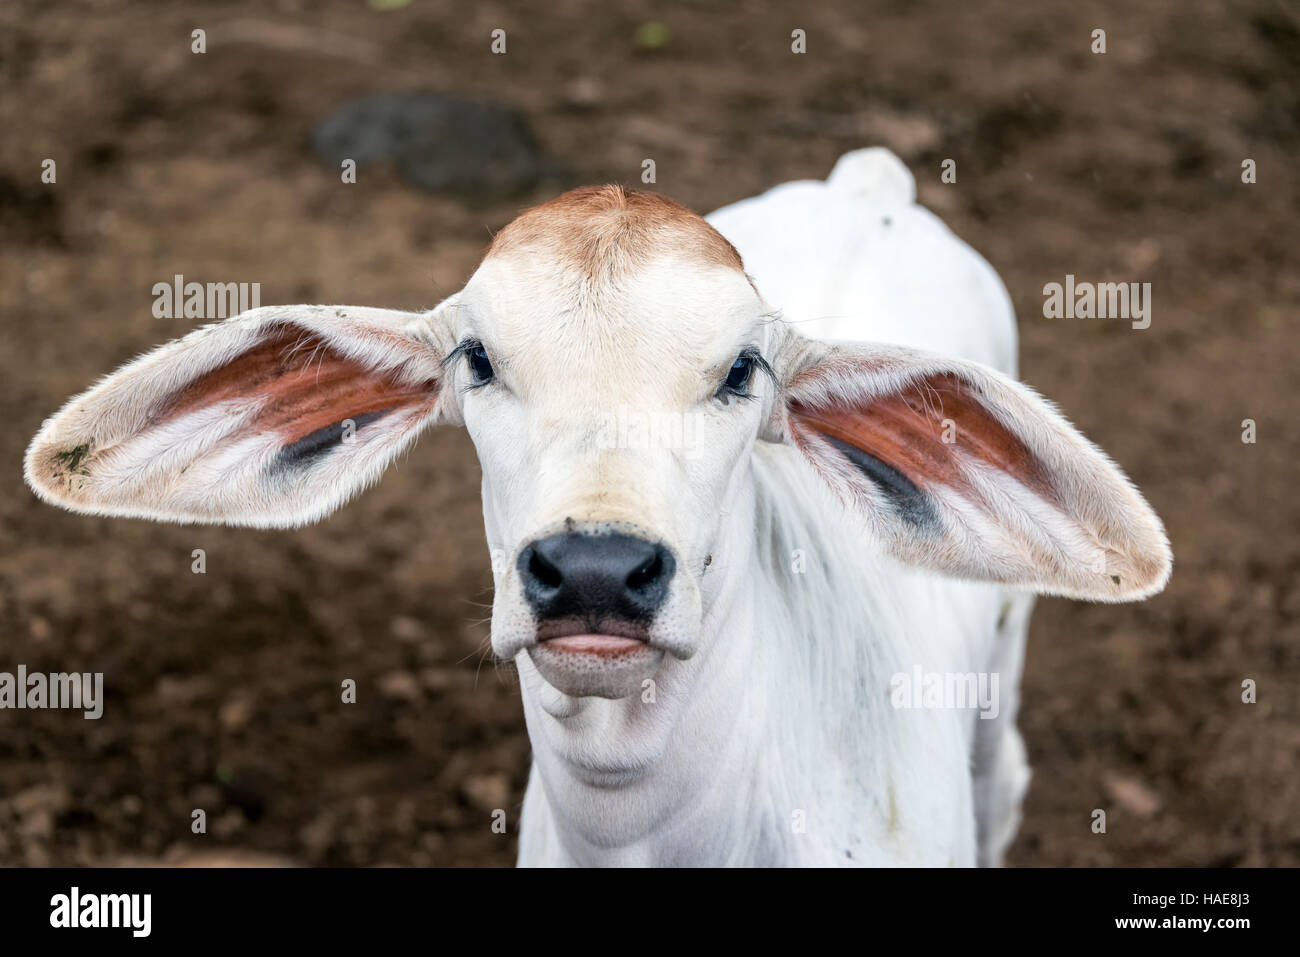 Young calf with big floppy ears seen in the town of Guane, Colombia - Stock Image